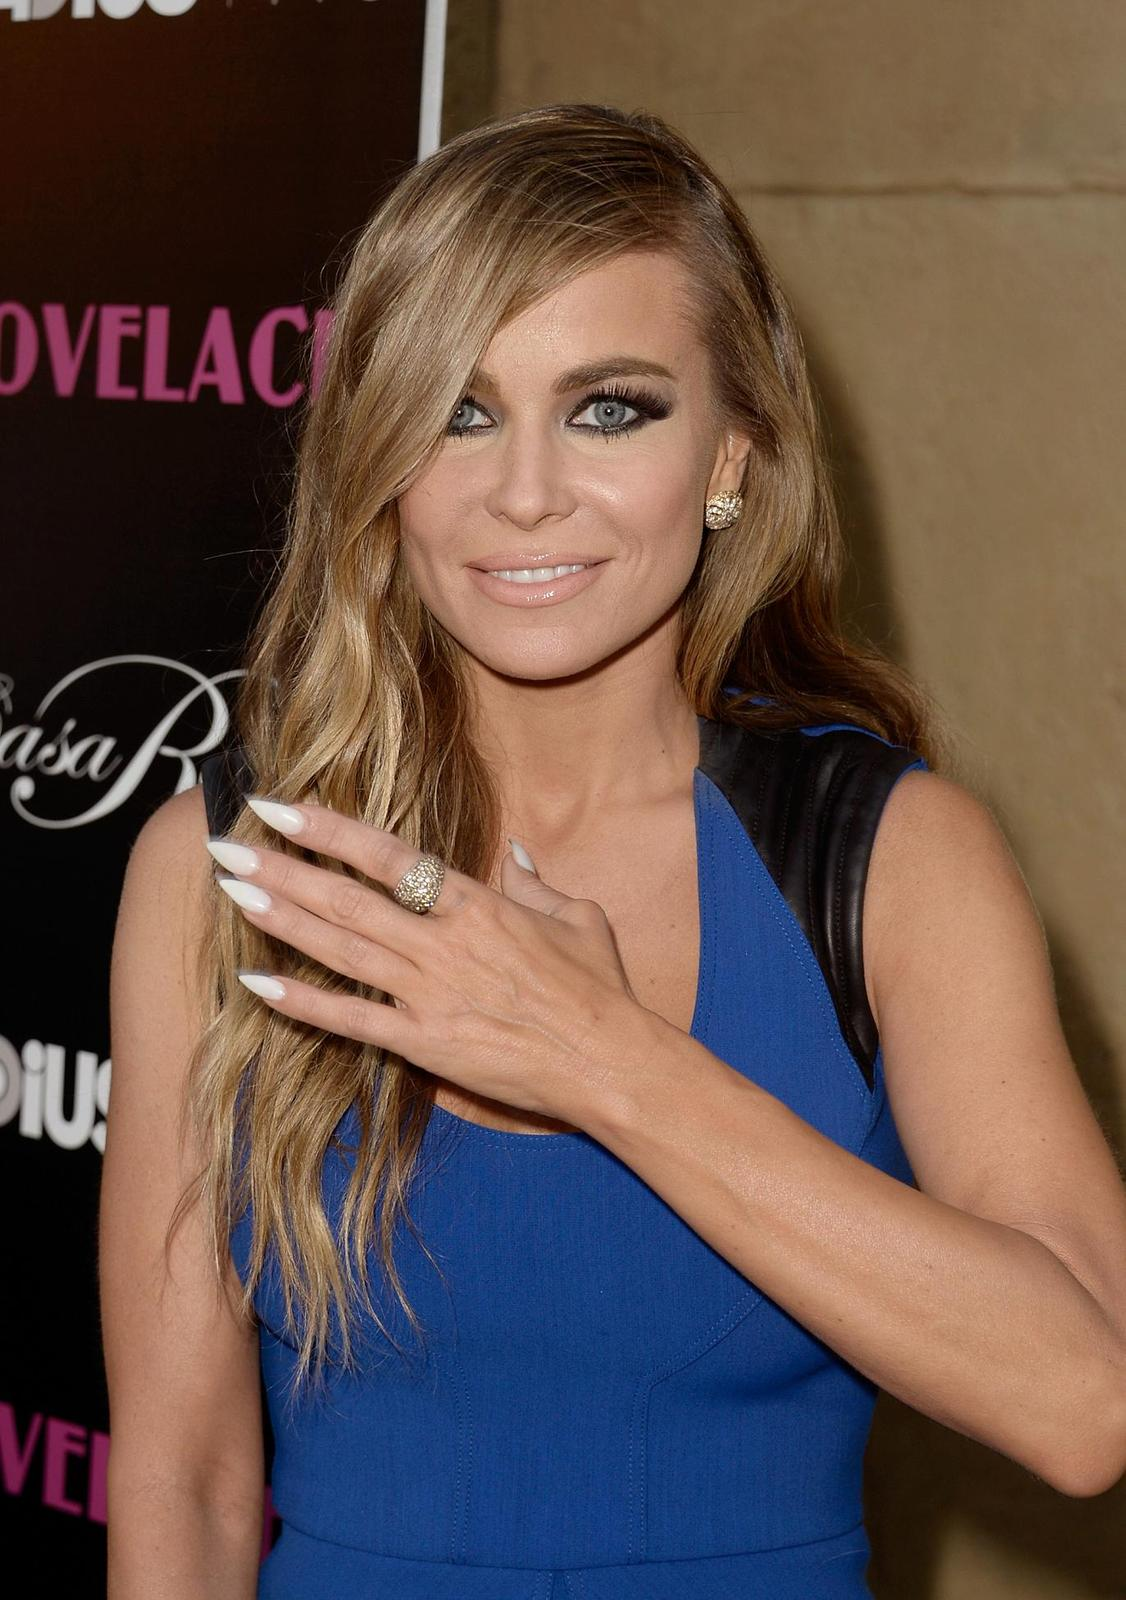 Carmen Electra in blue -Lovelace Premiere Vt1i